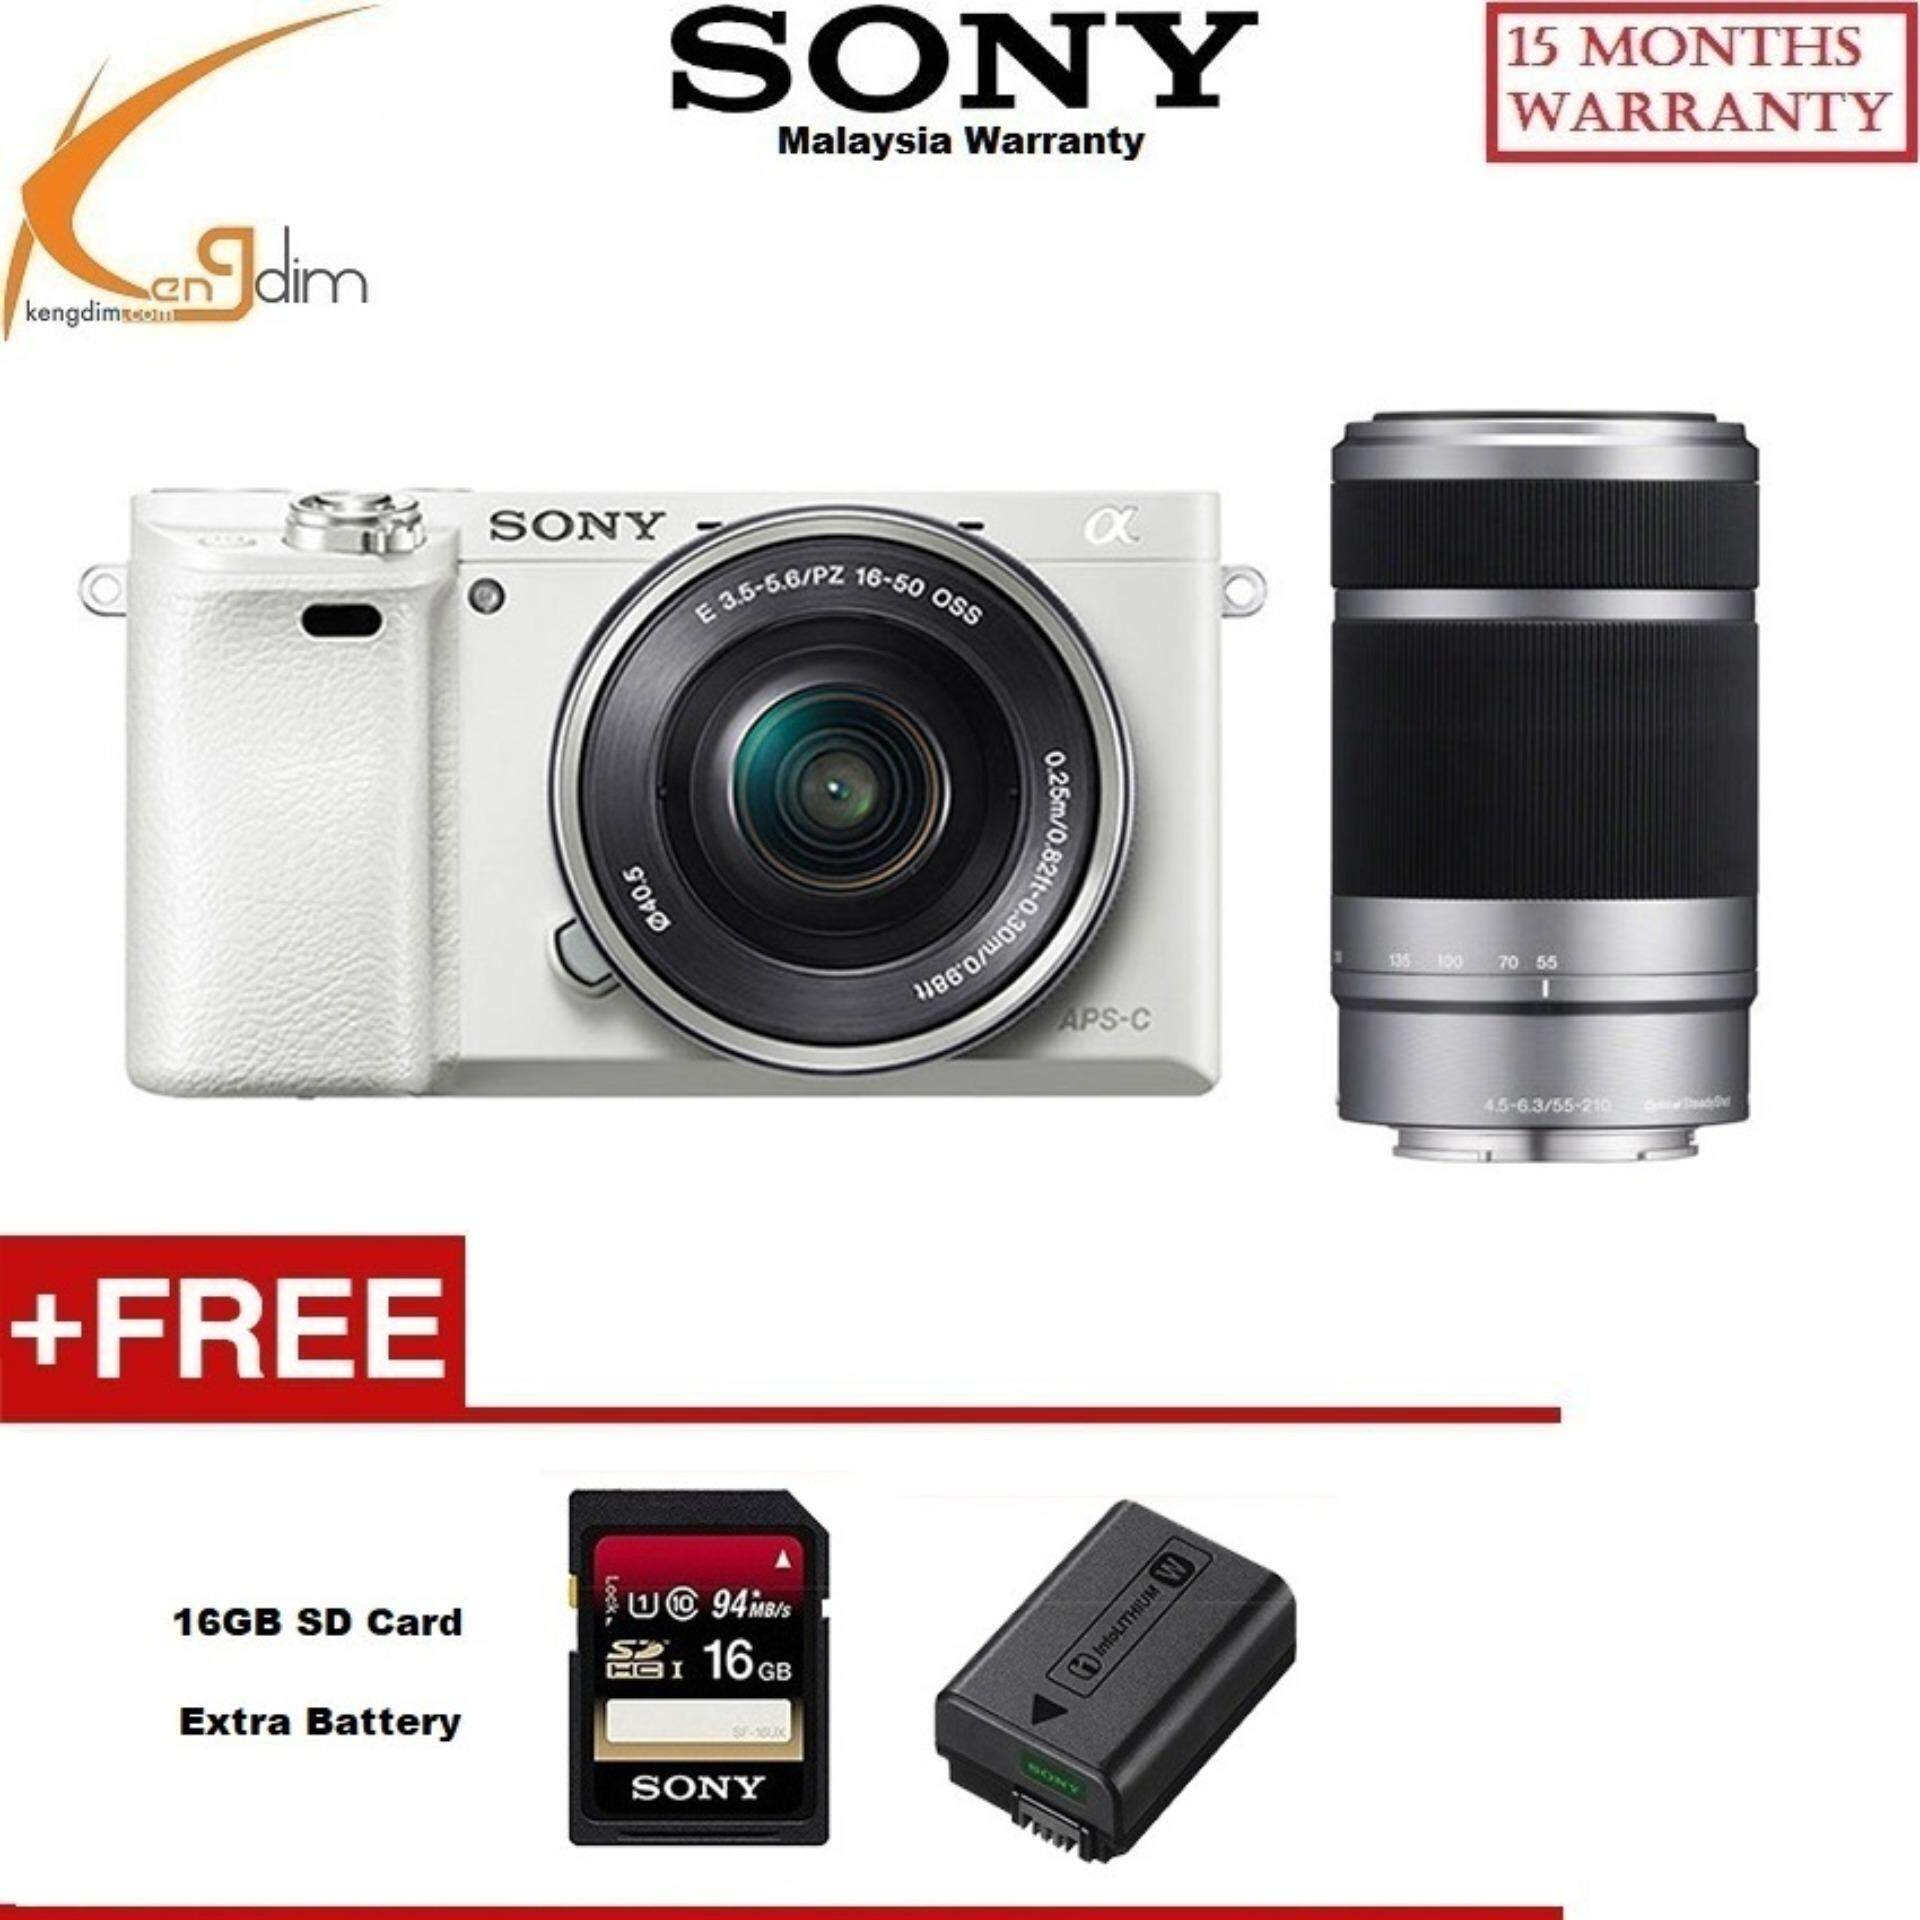 Sony a6000 Kit with 16-50(white)+55-210mm Lens(blk)(SONY MALAYSIA 1 YEAR WARRANTY)